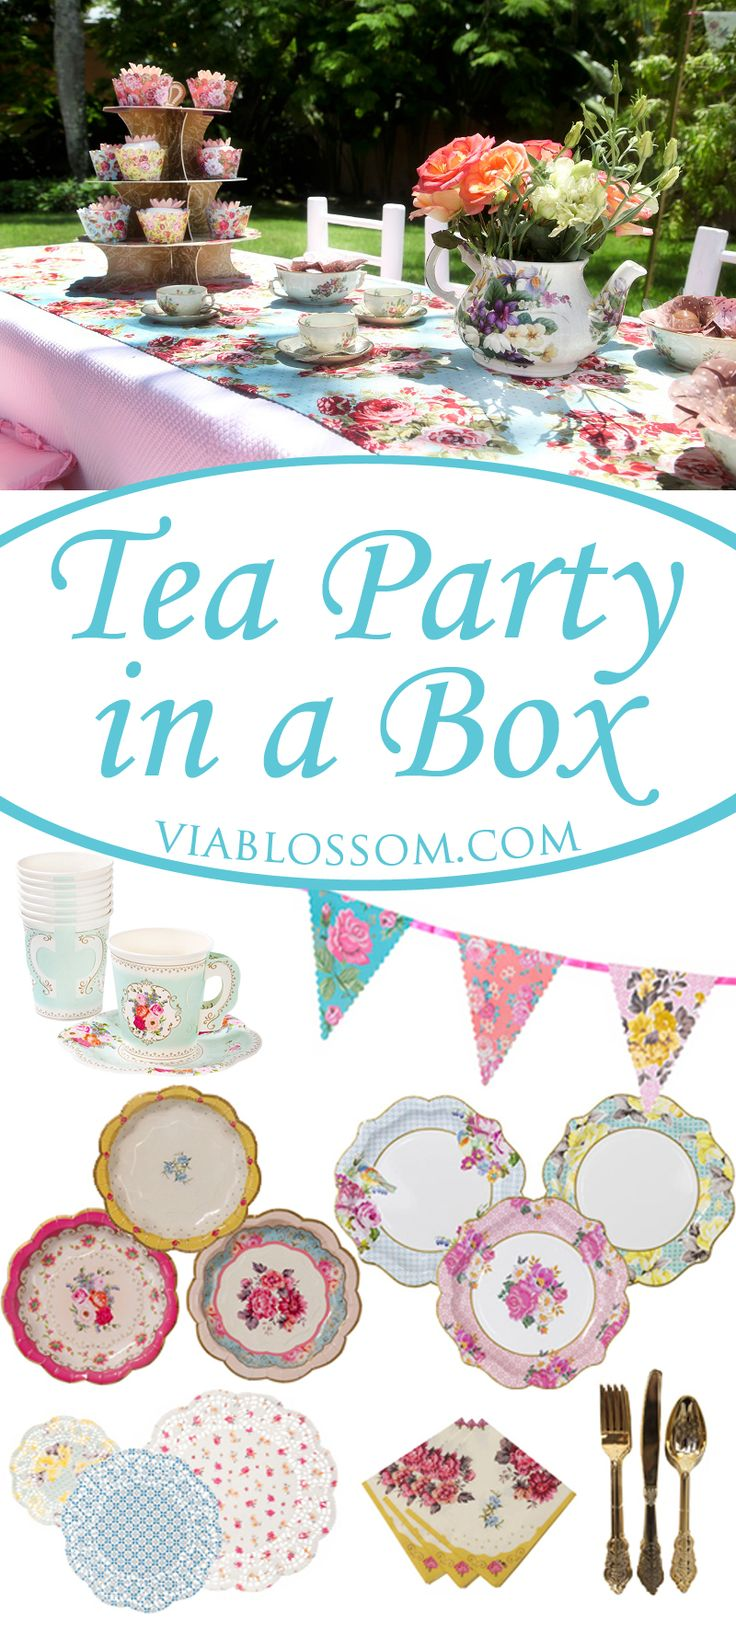 No guess work! Celebrate a scrumptious Tea Party for 12 guests with our Tea Party in a Box! In this party pack we have included our favorite Tea Party Supplies for easy shopping at a lower cost